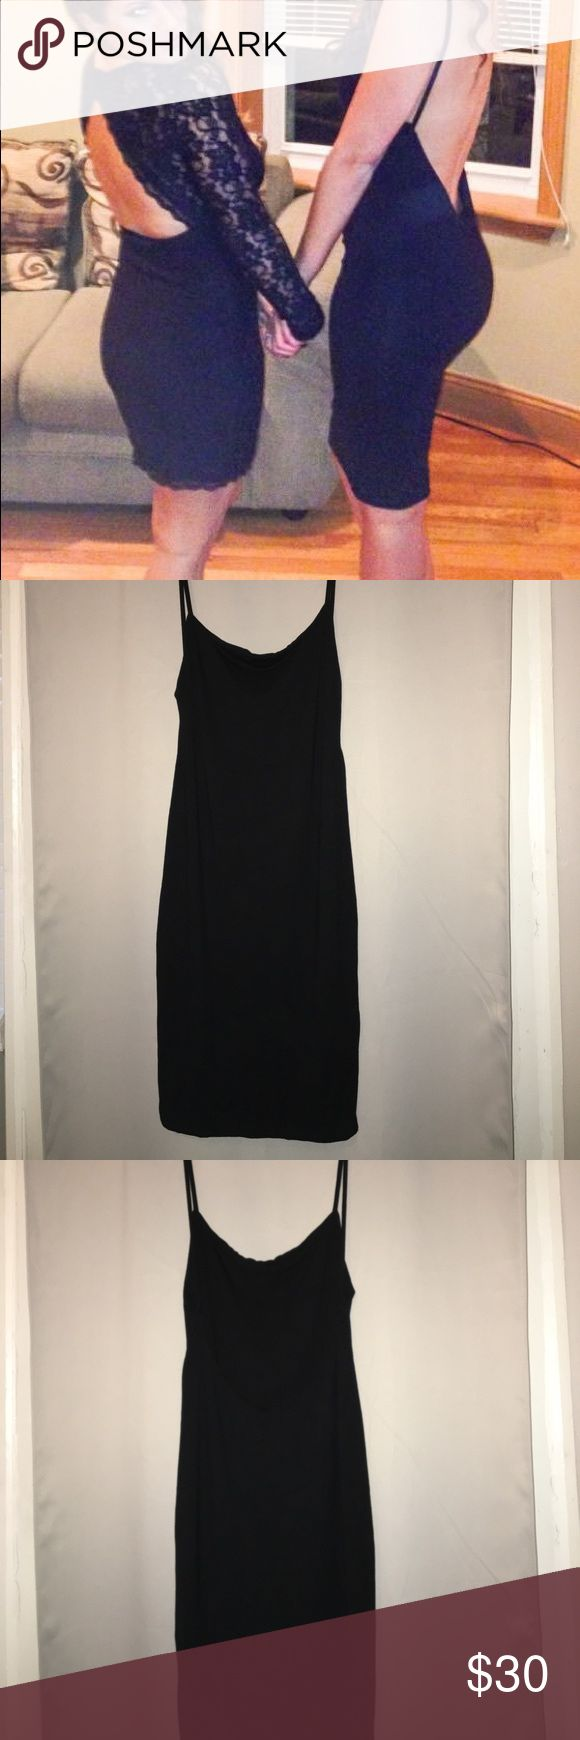 Missguided black dress Missguided open back black dress. Double lined. One of my favorites! Perfect for a wedding, New Years or date night! Worn once! Size says 12 but I'm 5'7, 135 lbs and it fits PERFECT! I typically wear sizes 4/6. Missguided Dresses Midi